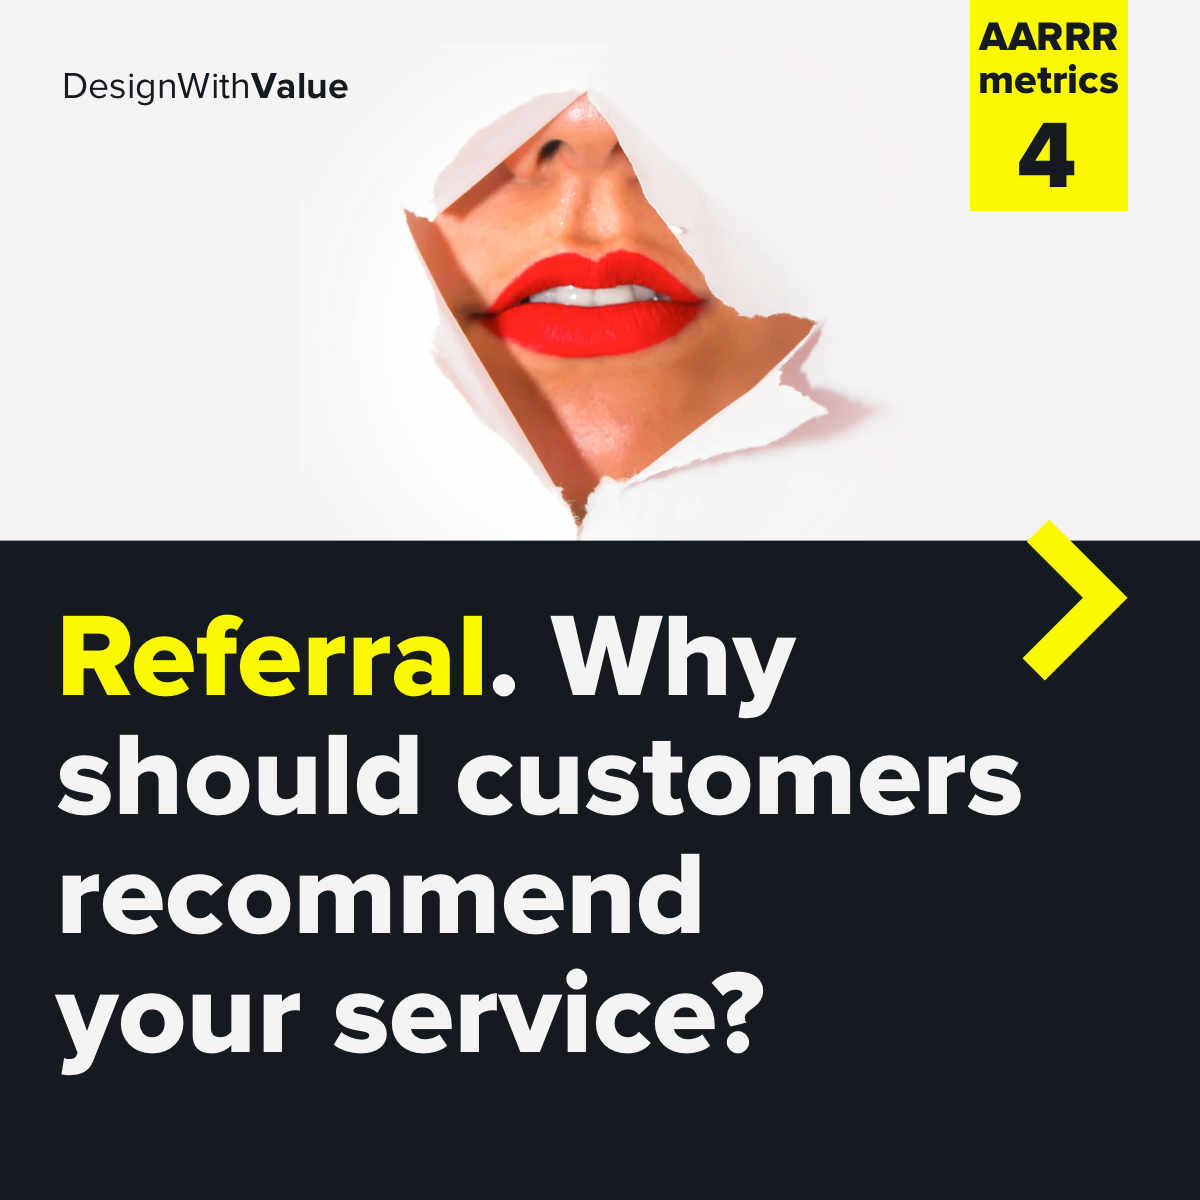 Referral. Why should customers recommend your service?